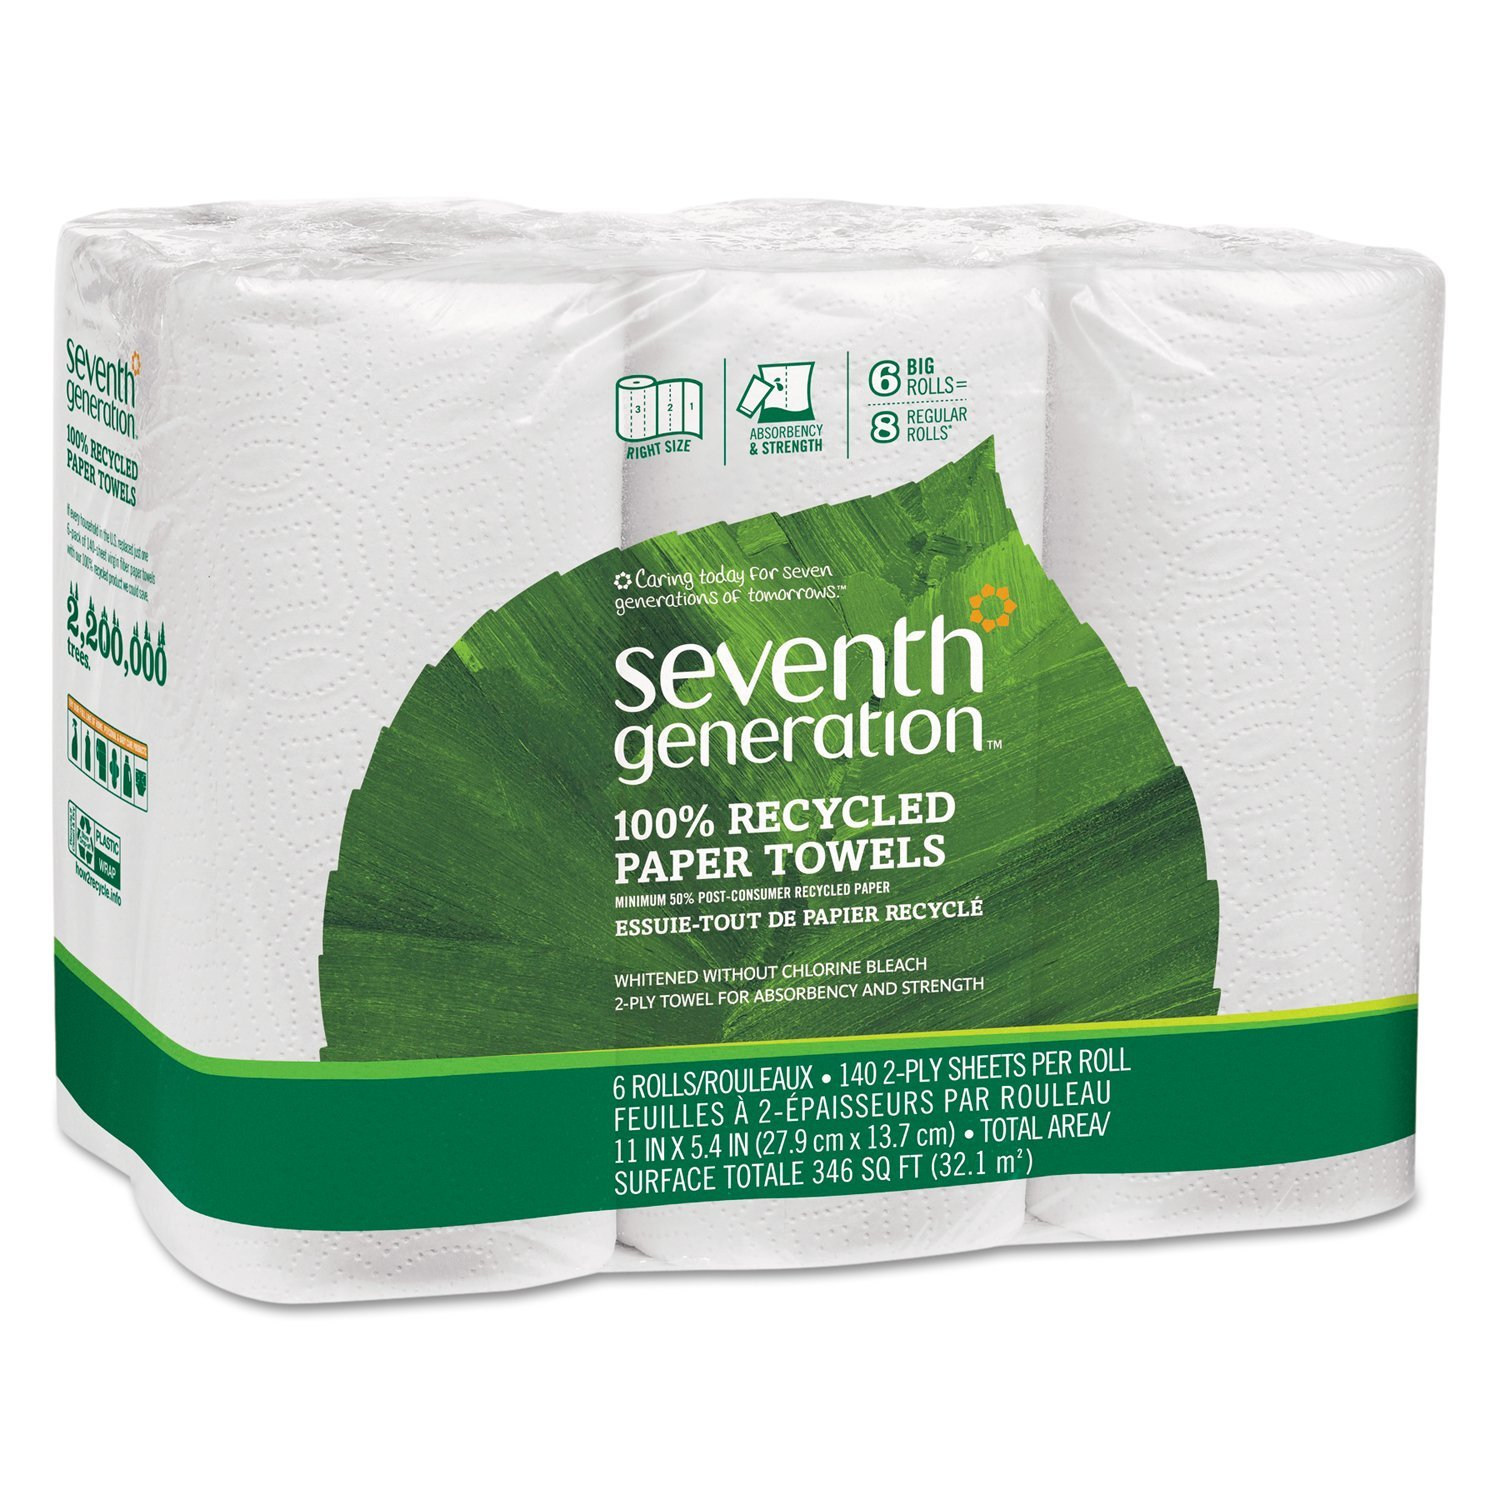 Seventh Generation 13731CT 100% Recycled Paper Towel Rolls, 2-Ply, 11 x 5.4 Sheets, 140 Sheets Per Roll, 4 Packs of 6 Rolls (Case of 24)